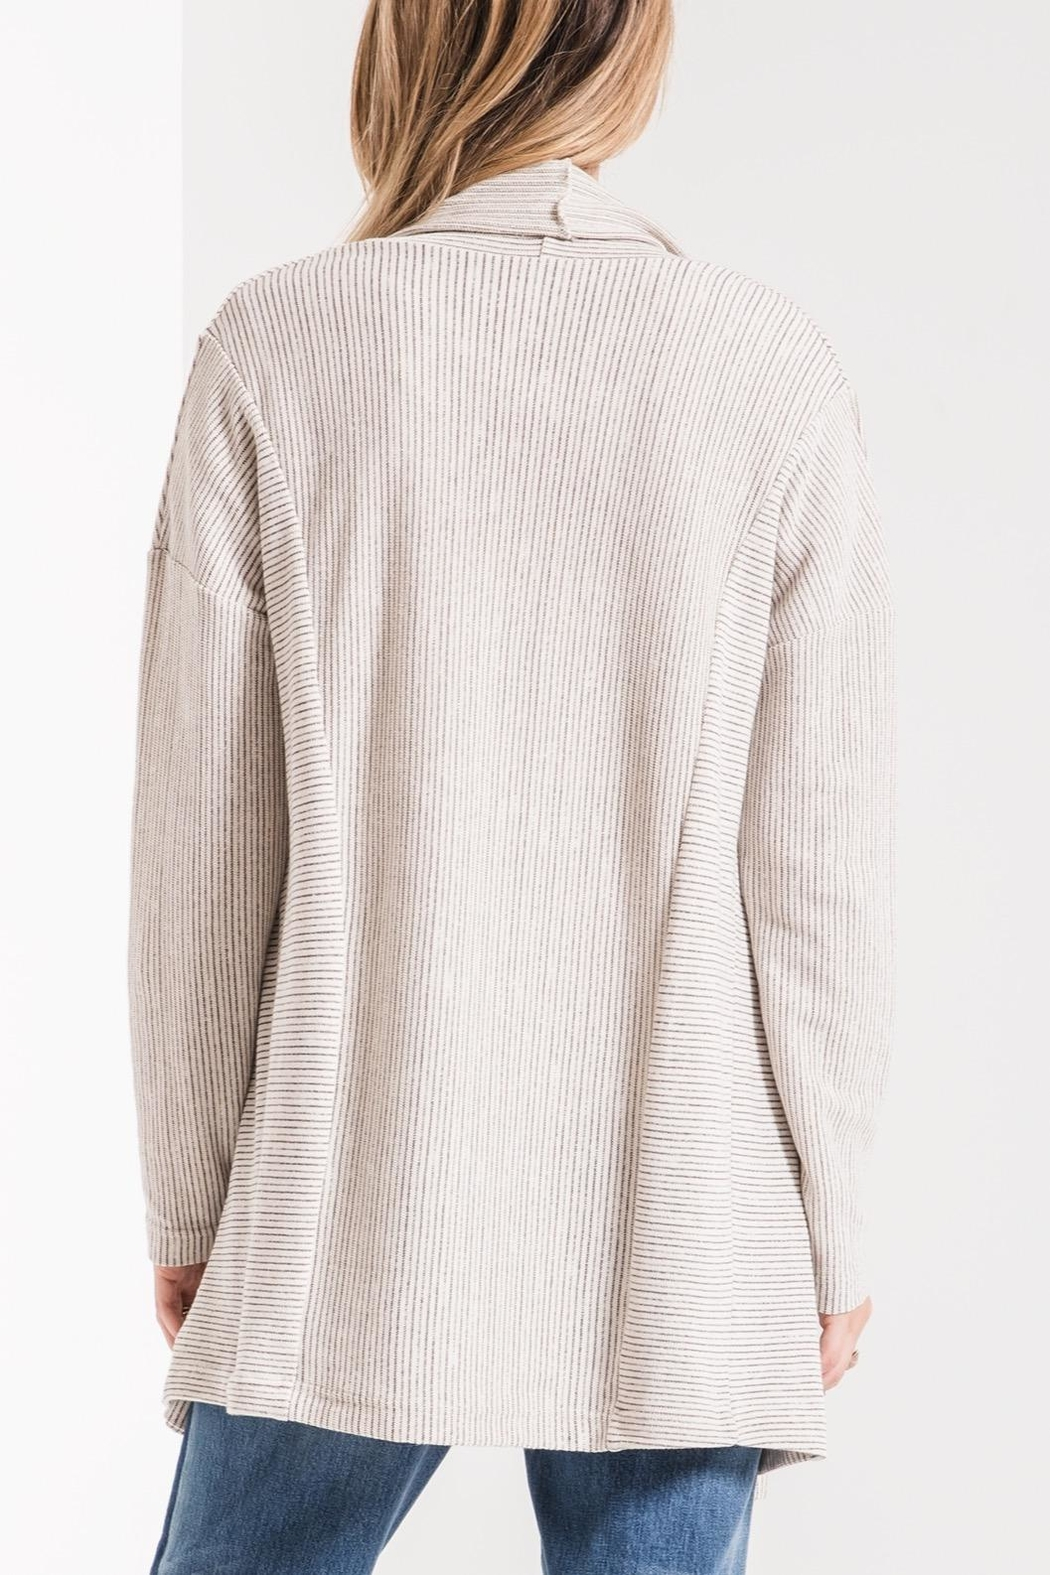 z supply Hacci Open Cardigan - Side Cropped Image